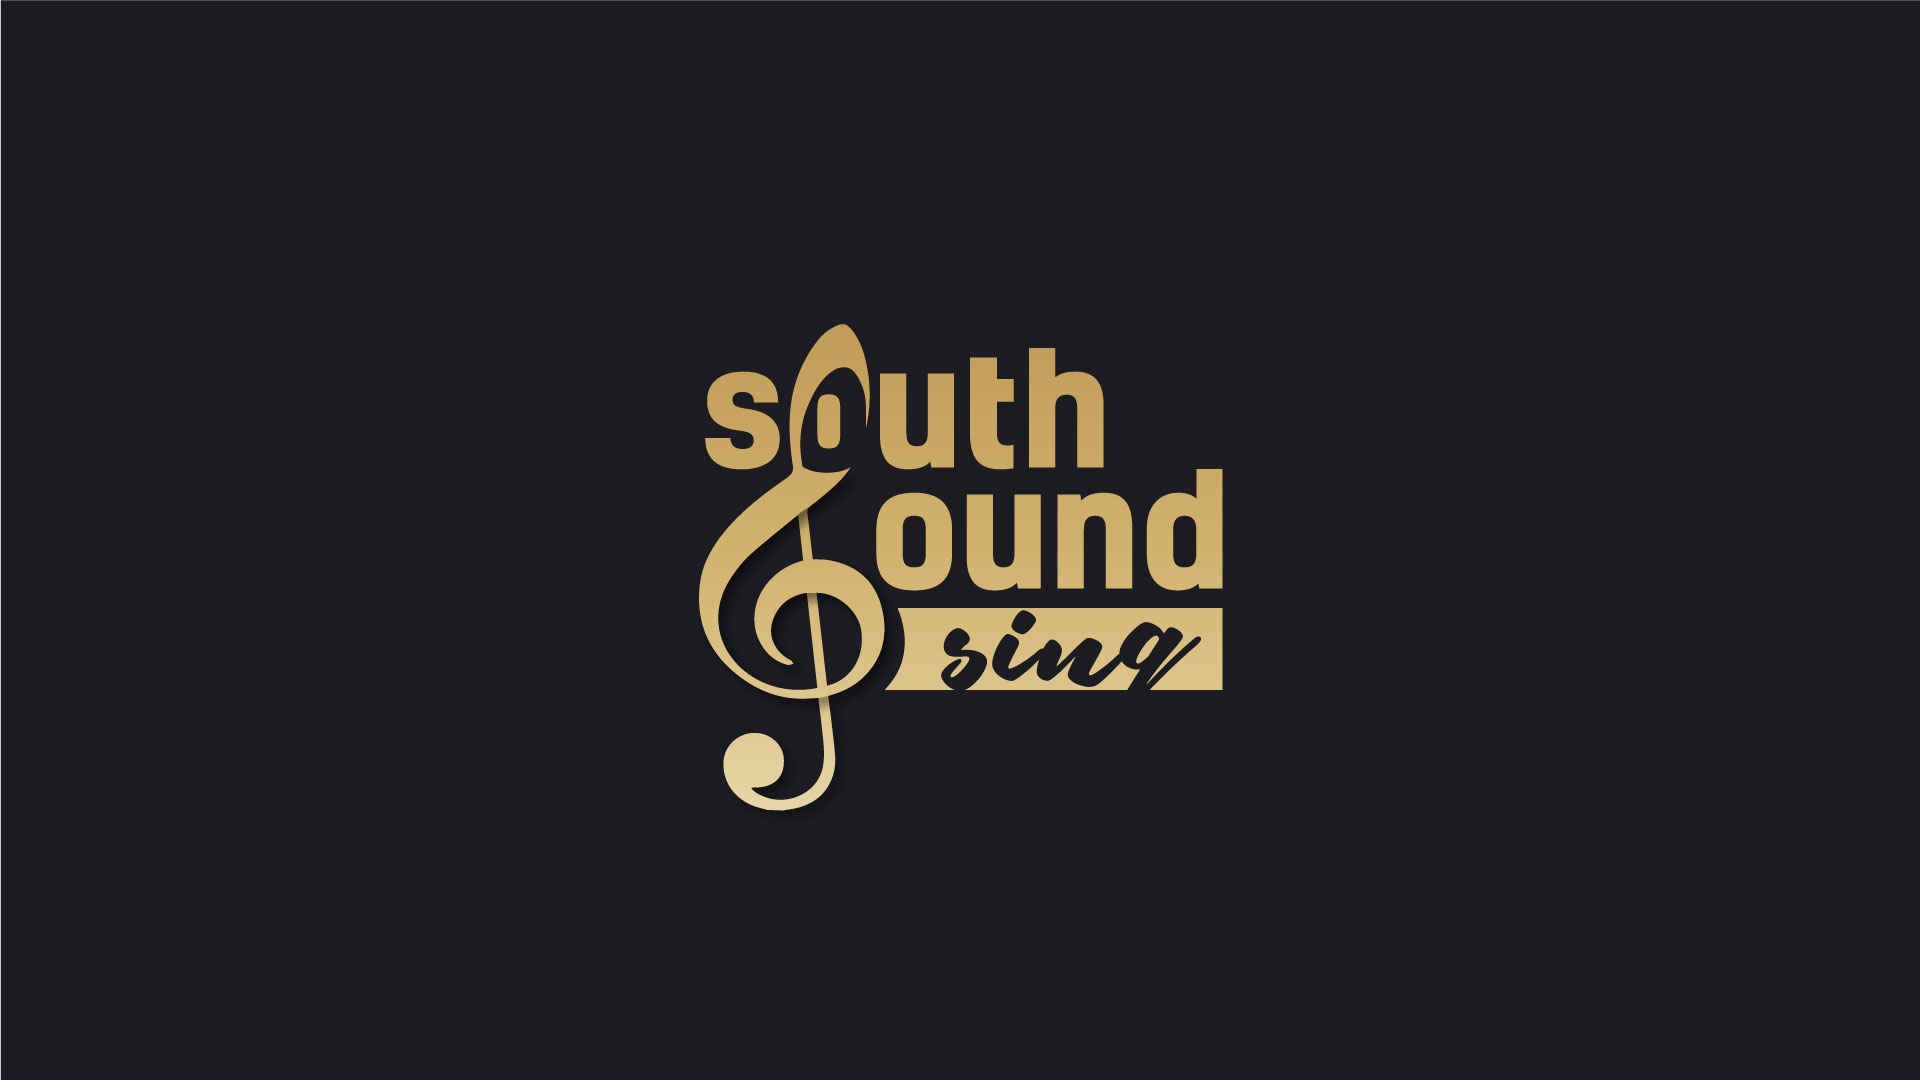 Life Center Central | South Sound Sing